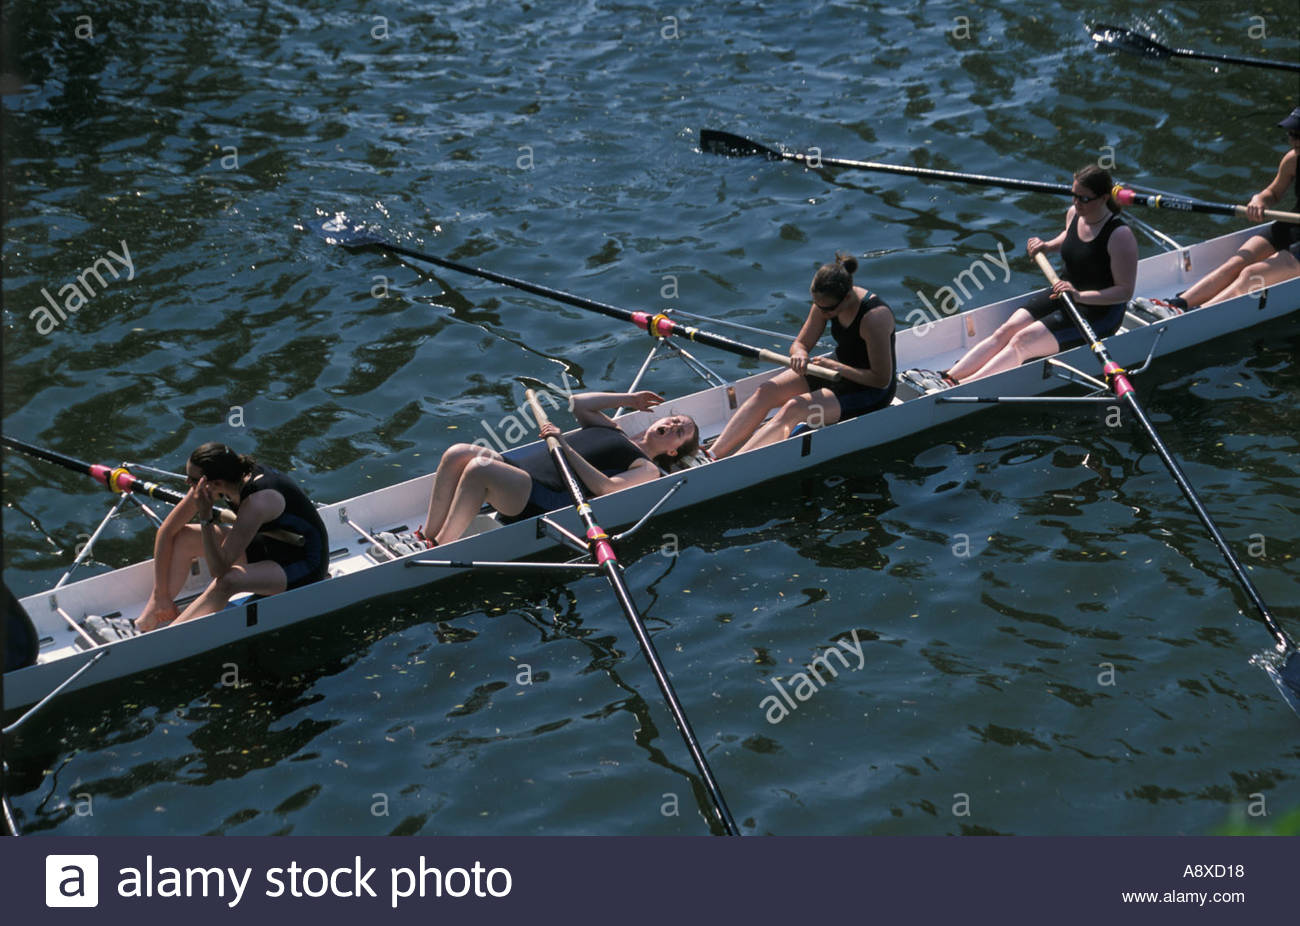 Oxford Bump Races with a distraught and exhausted crew after defeat, UK - Stock Image